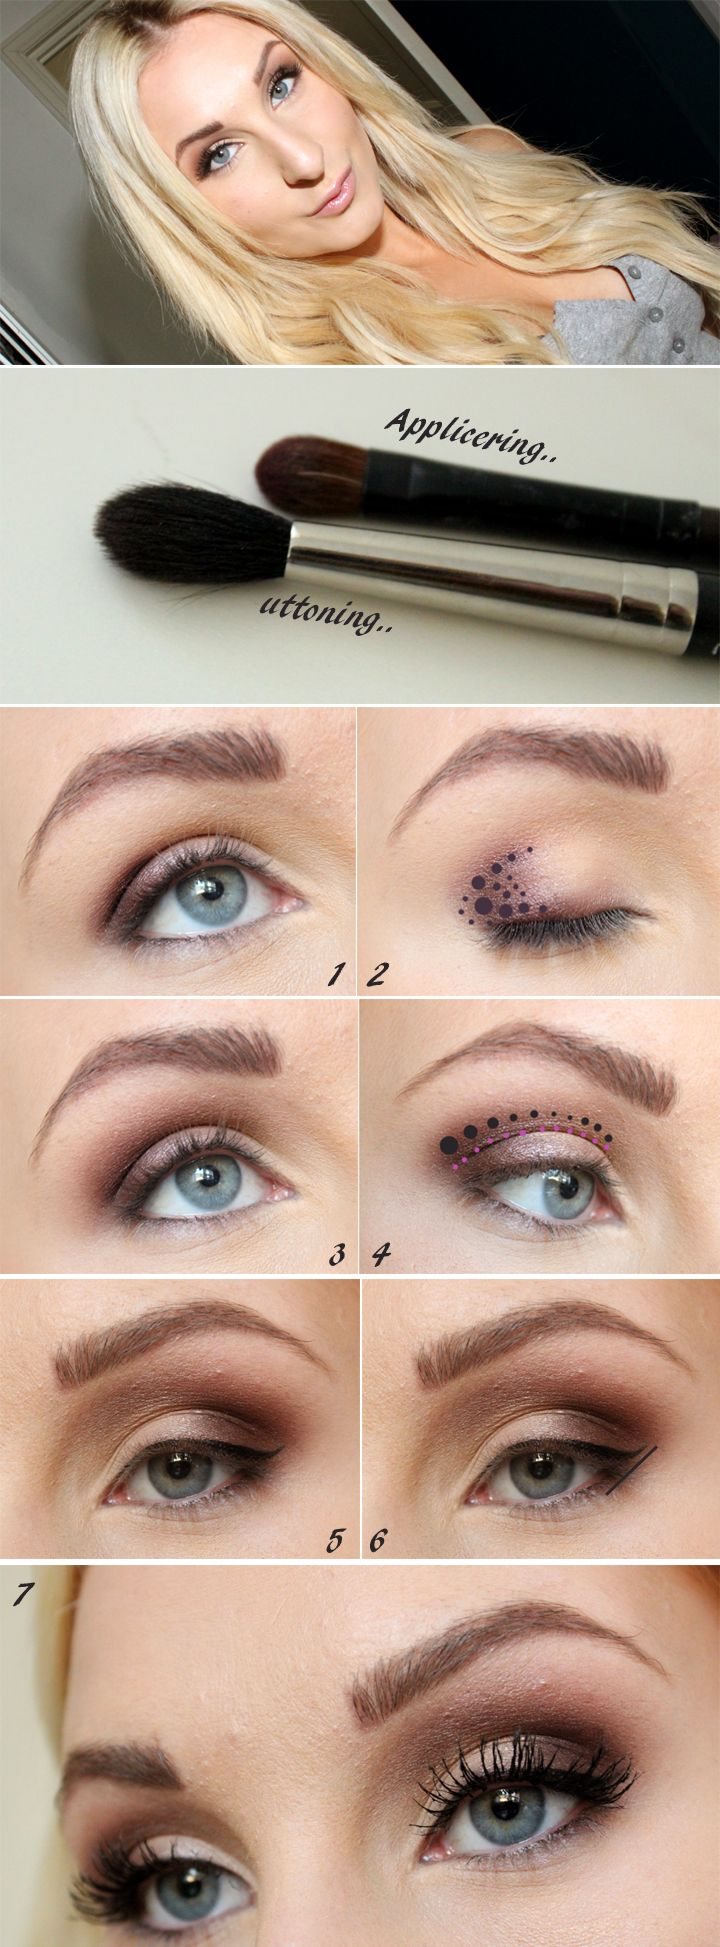 Tutorial: Prom/ Party/ Graduation by Helen Torsgården. Full tutorial on http://blogg.veckorevyn.com/hiilen/2012/05/04/bal-fest-student-sminkning-ogon-tutorial/